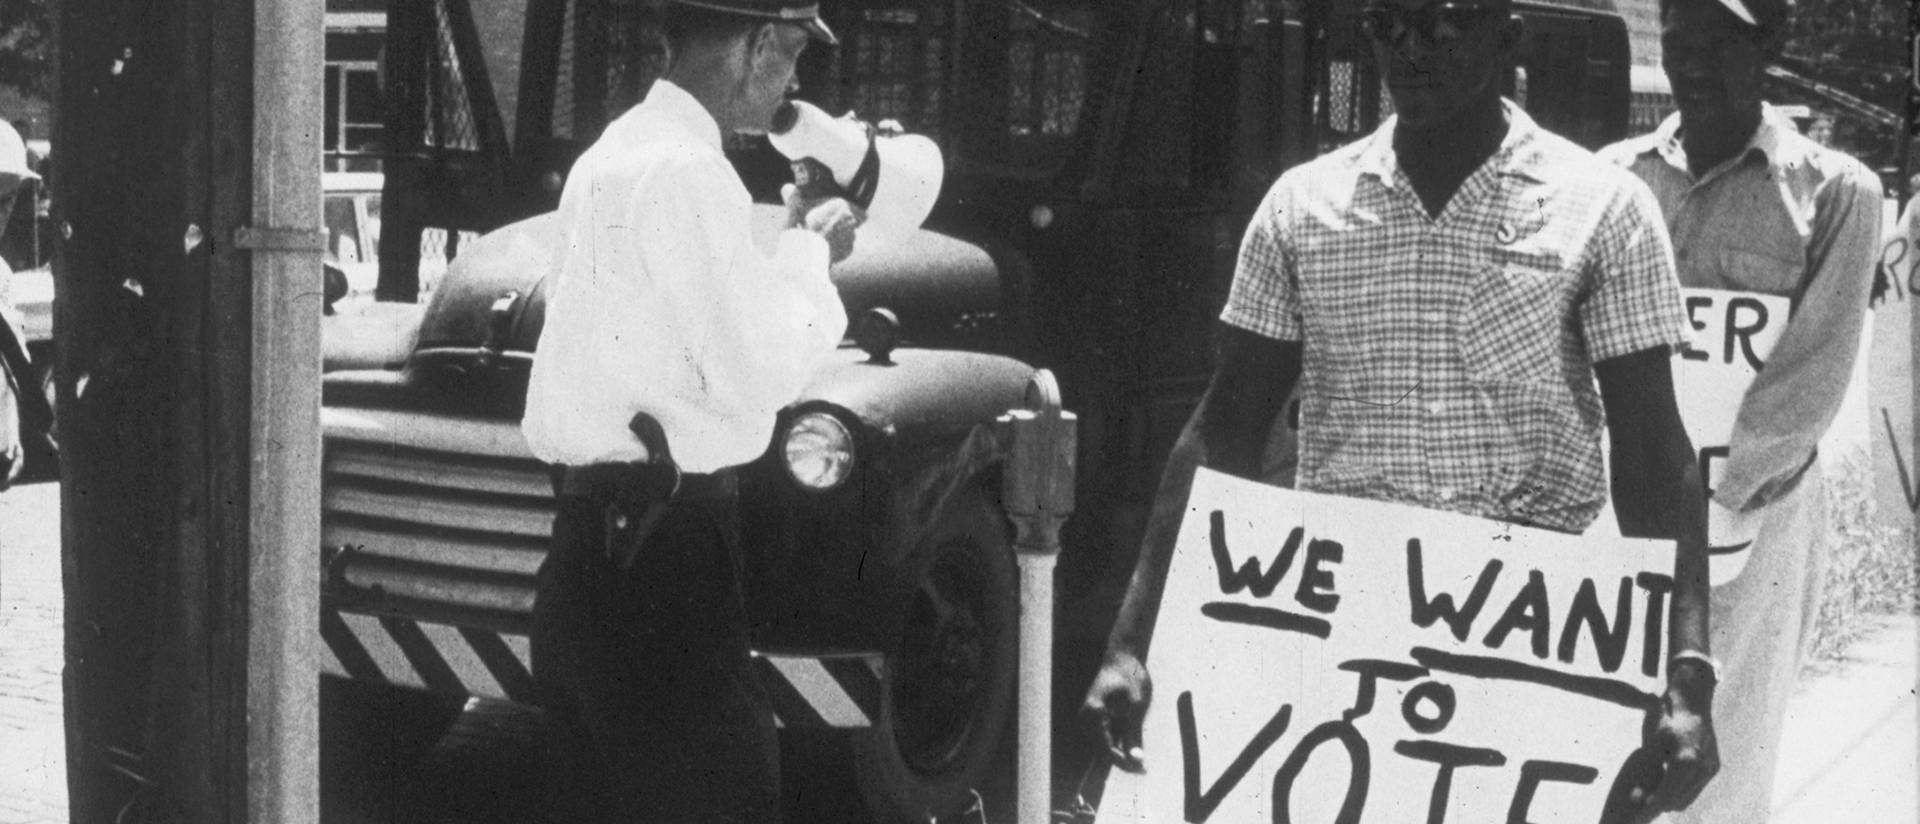 Historical photo from civil rights era, voting rights sign